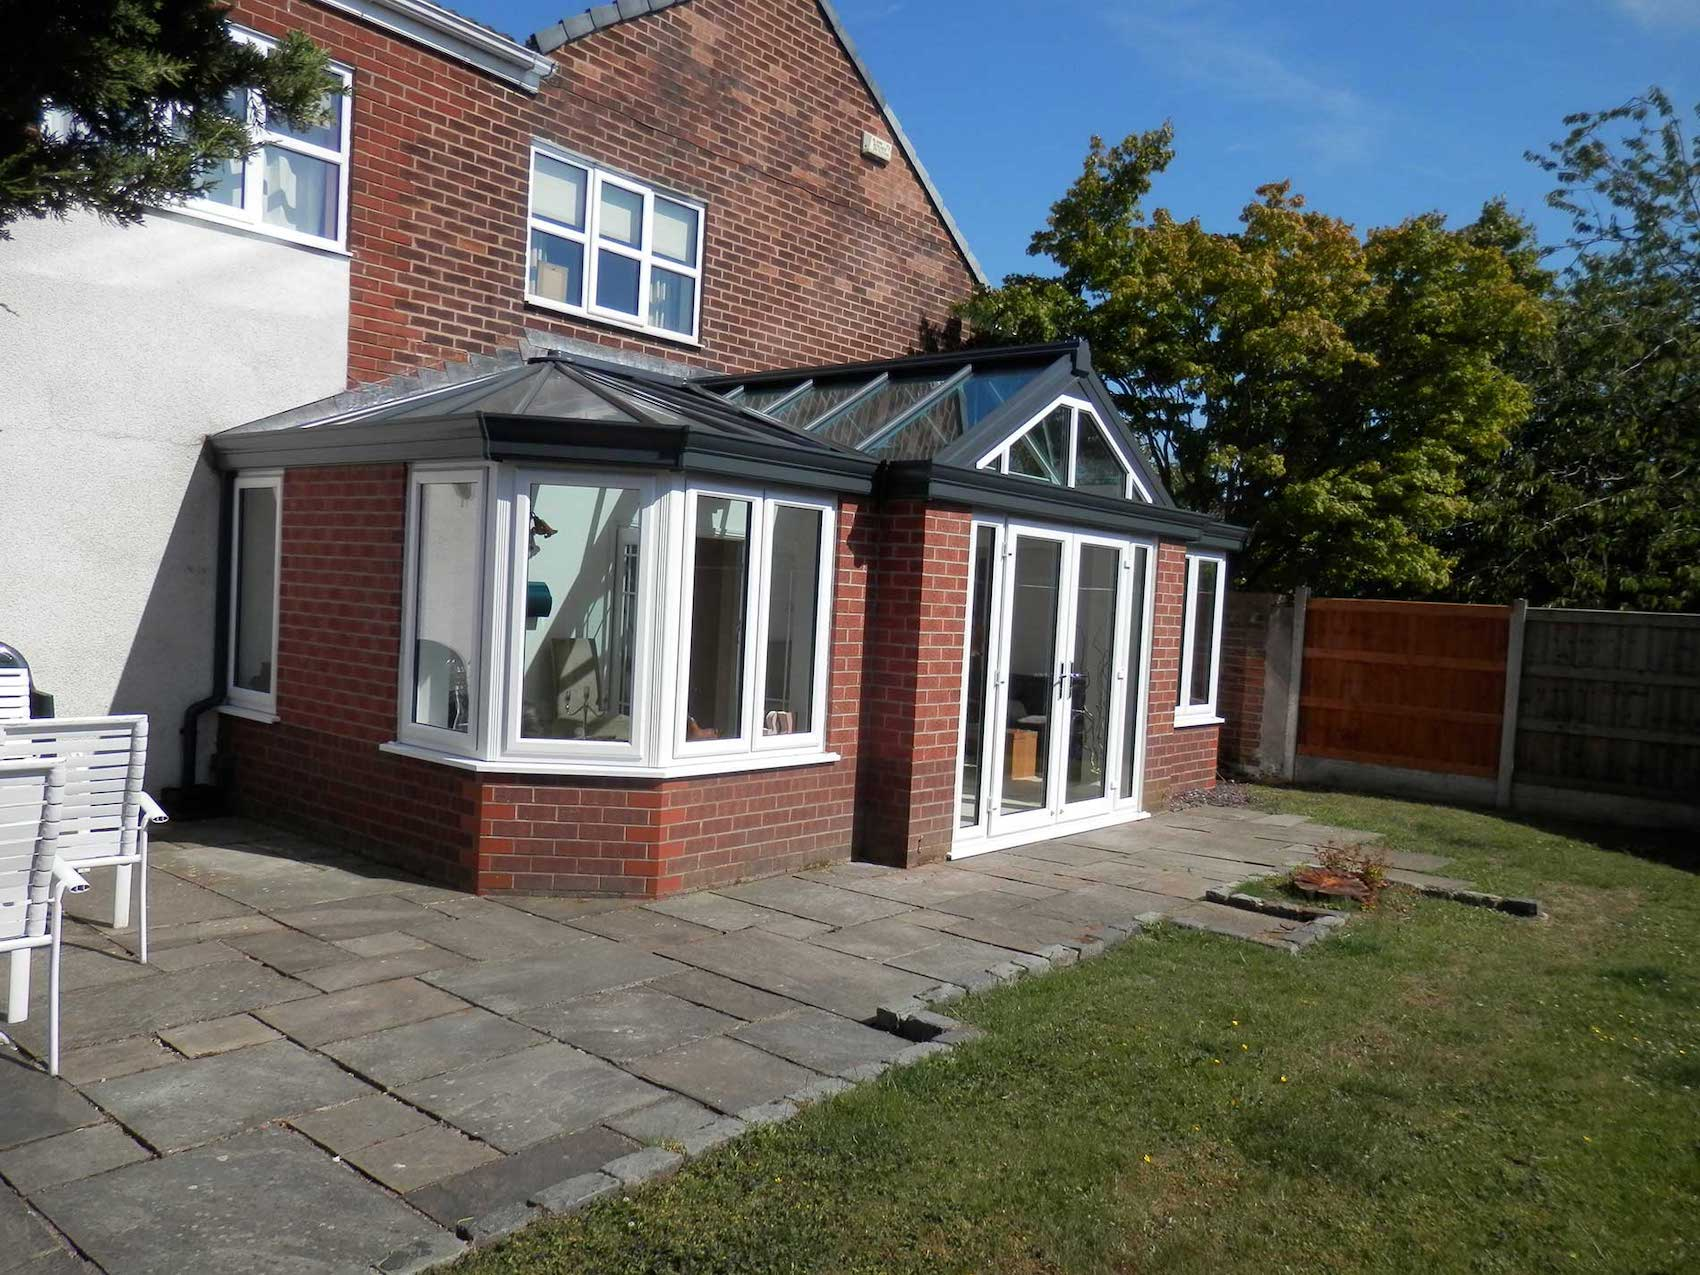 Conservatory To Orangery Wigan Conservatory Conversion